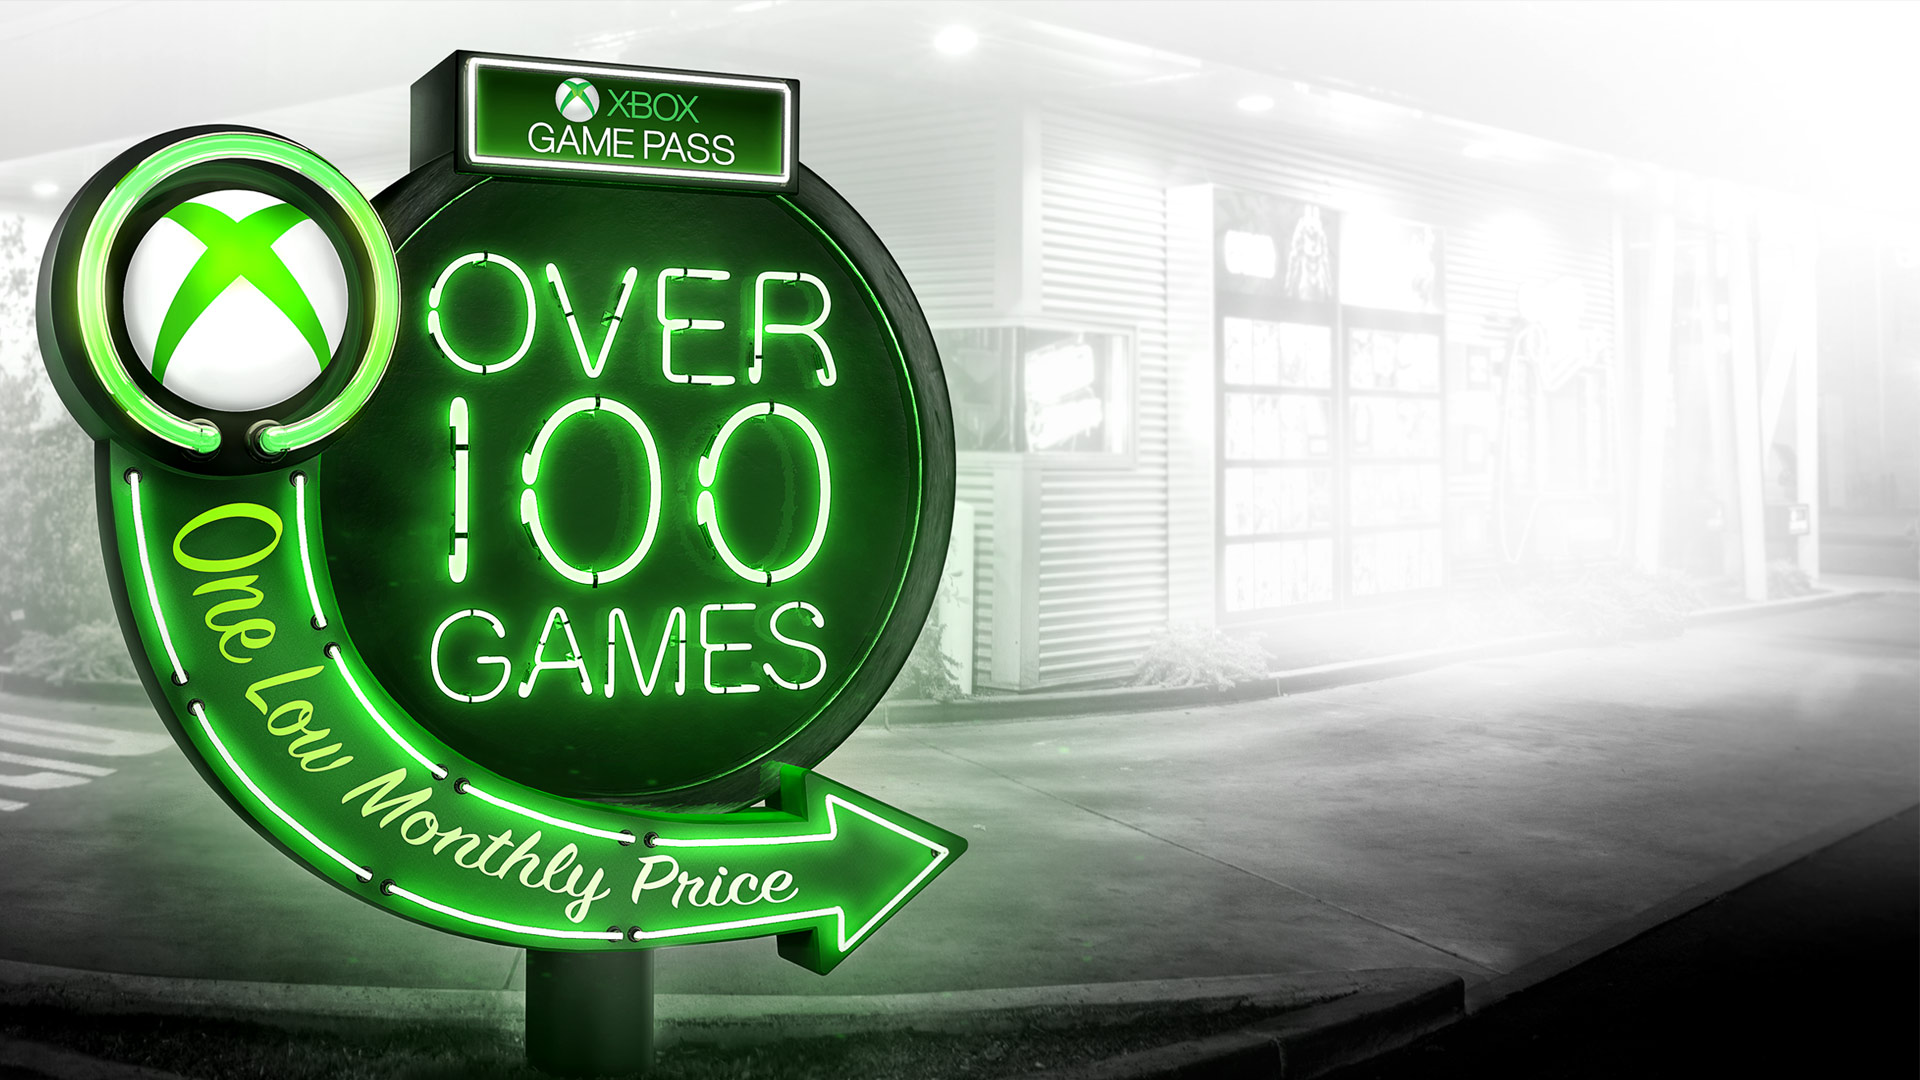 Is Game Pass the future of gaming?